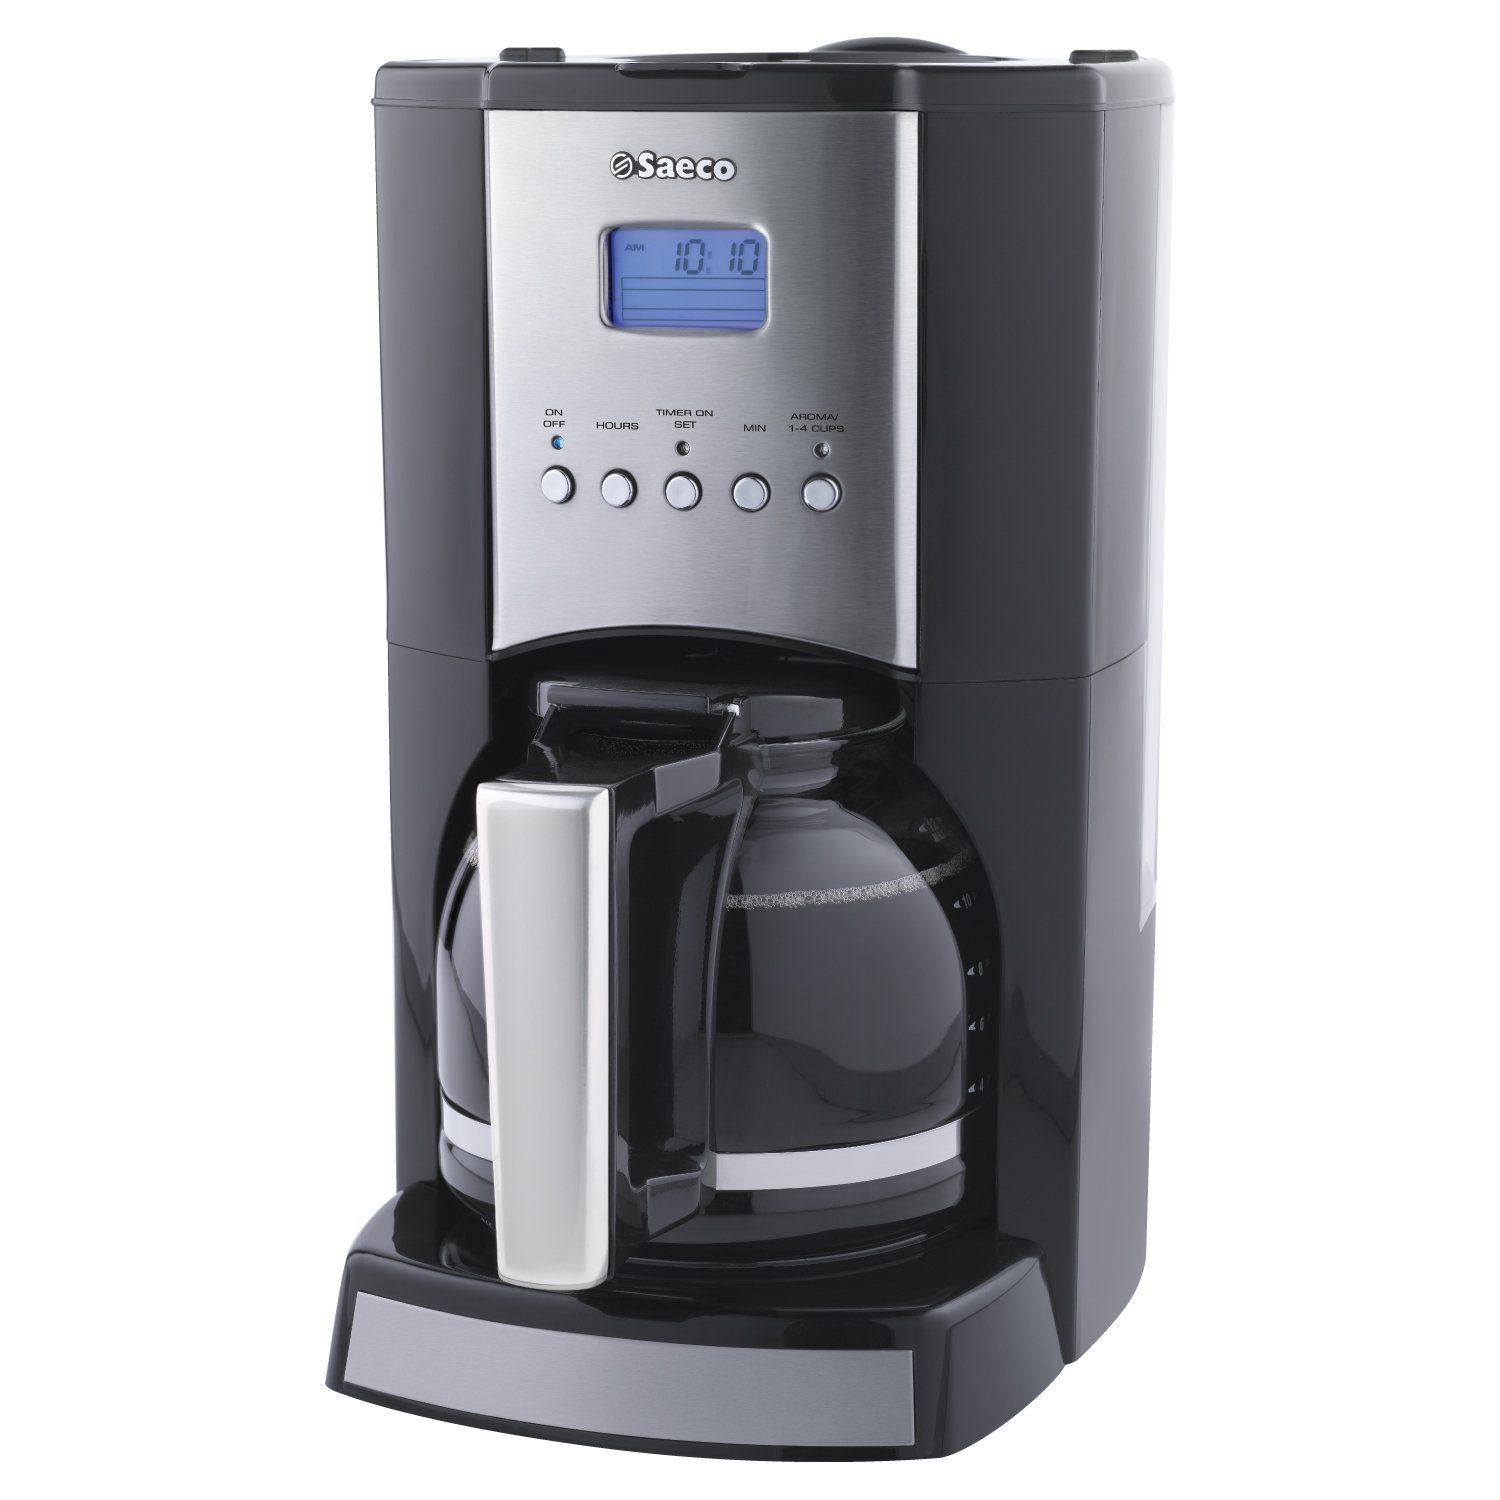 Saeco cup drip standard coffee maker ueueue check this awesome image